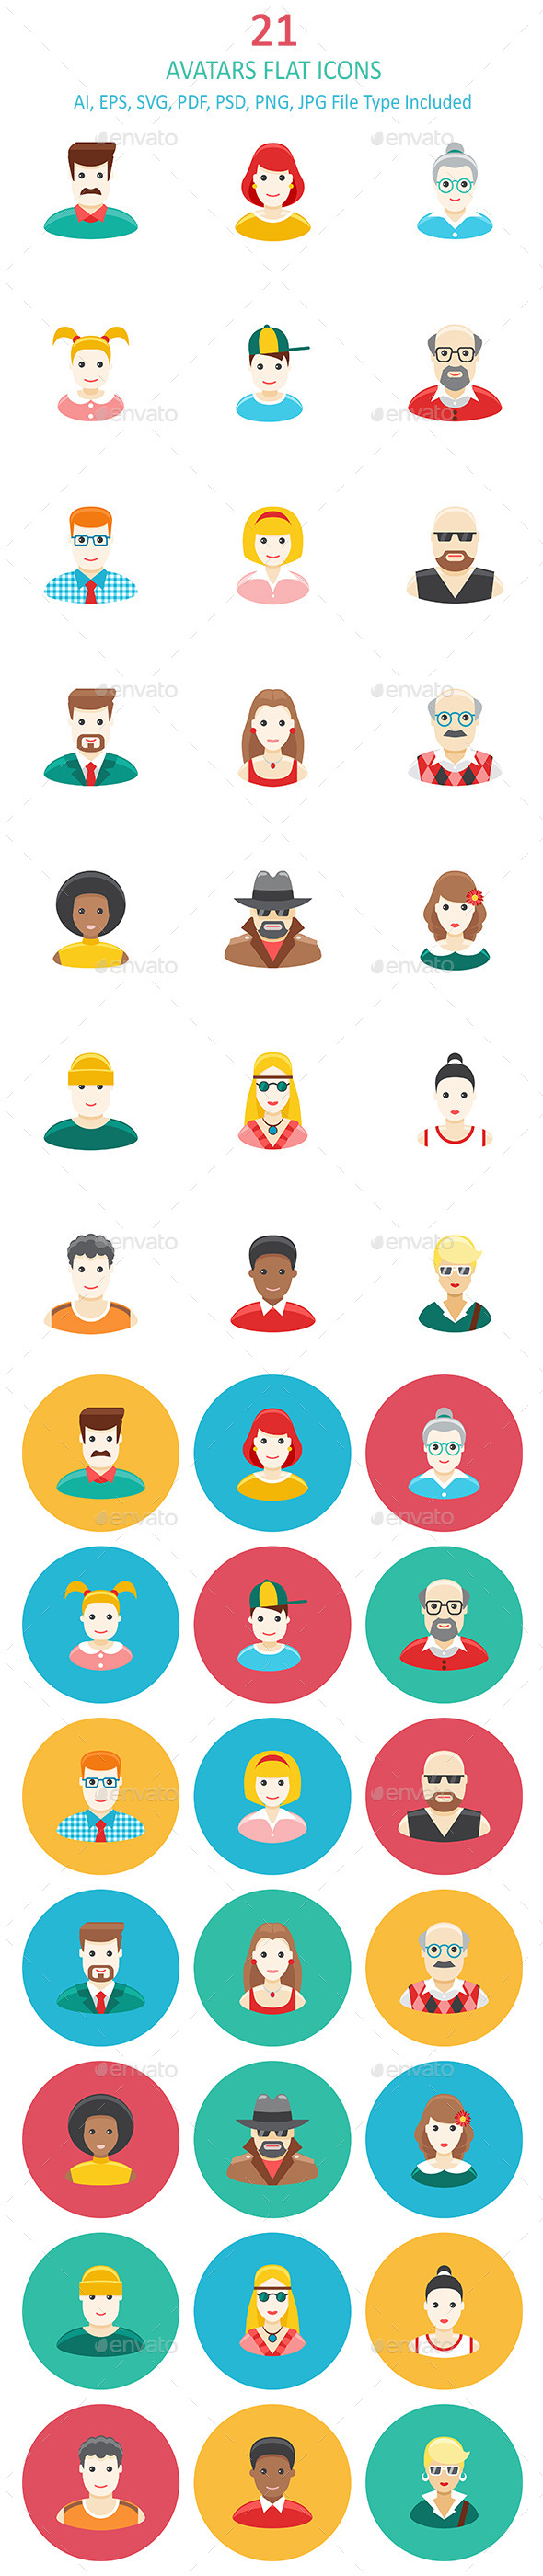 Avatars Flat Icons - People Characters